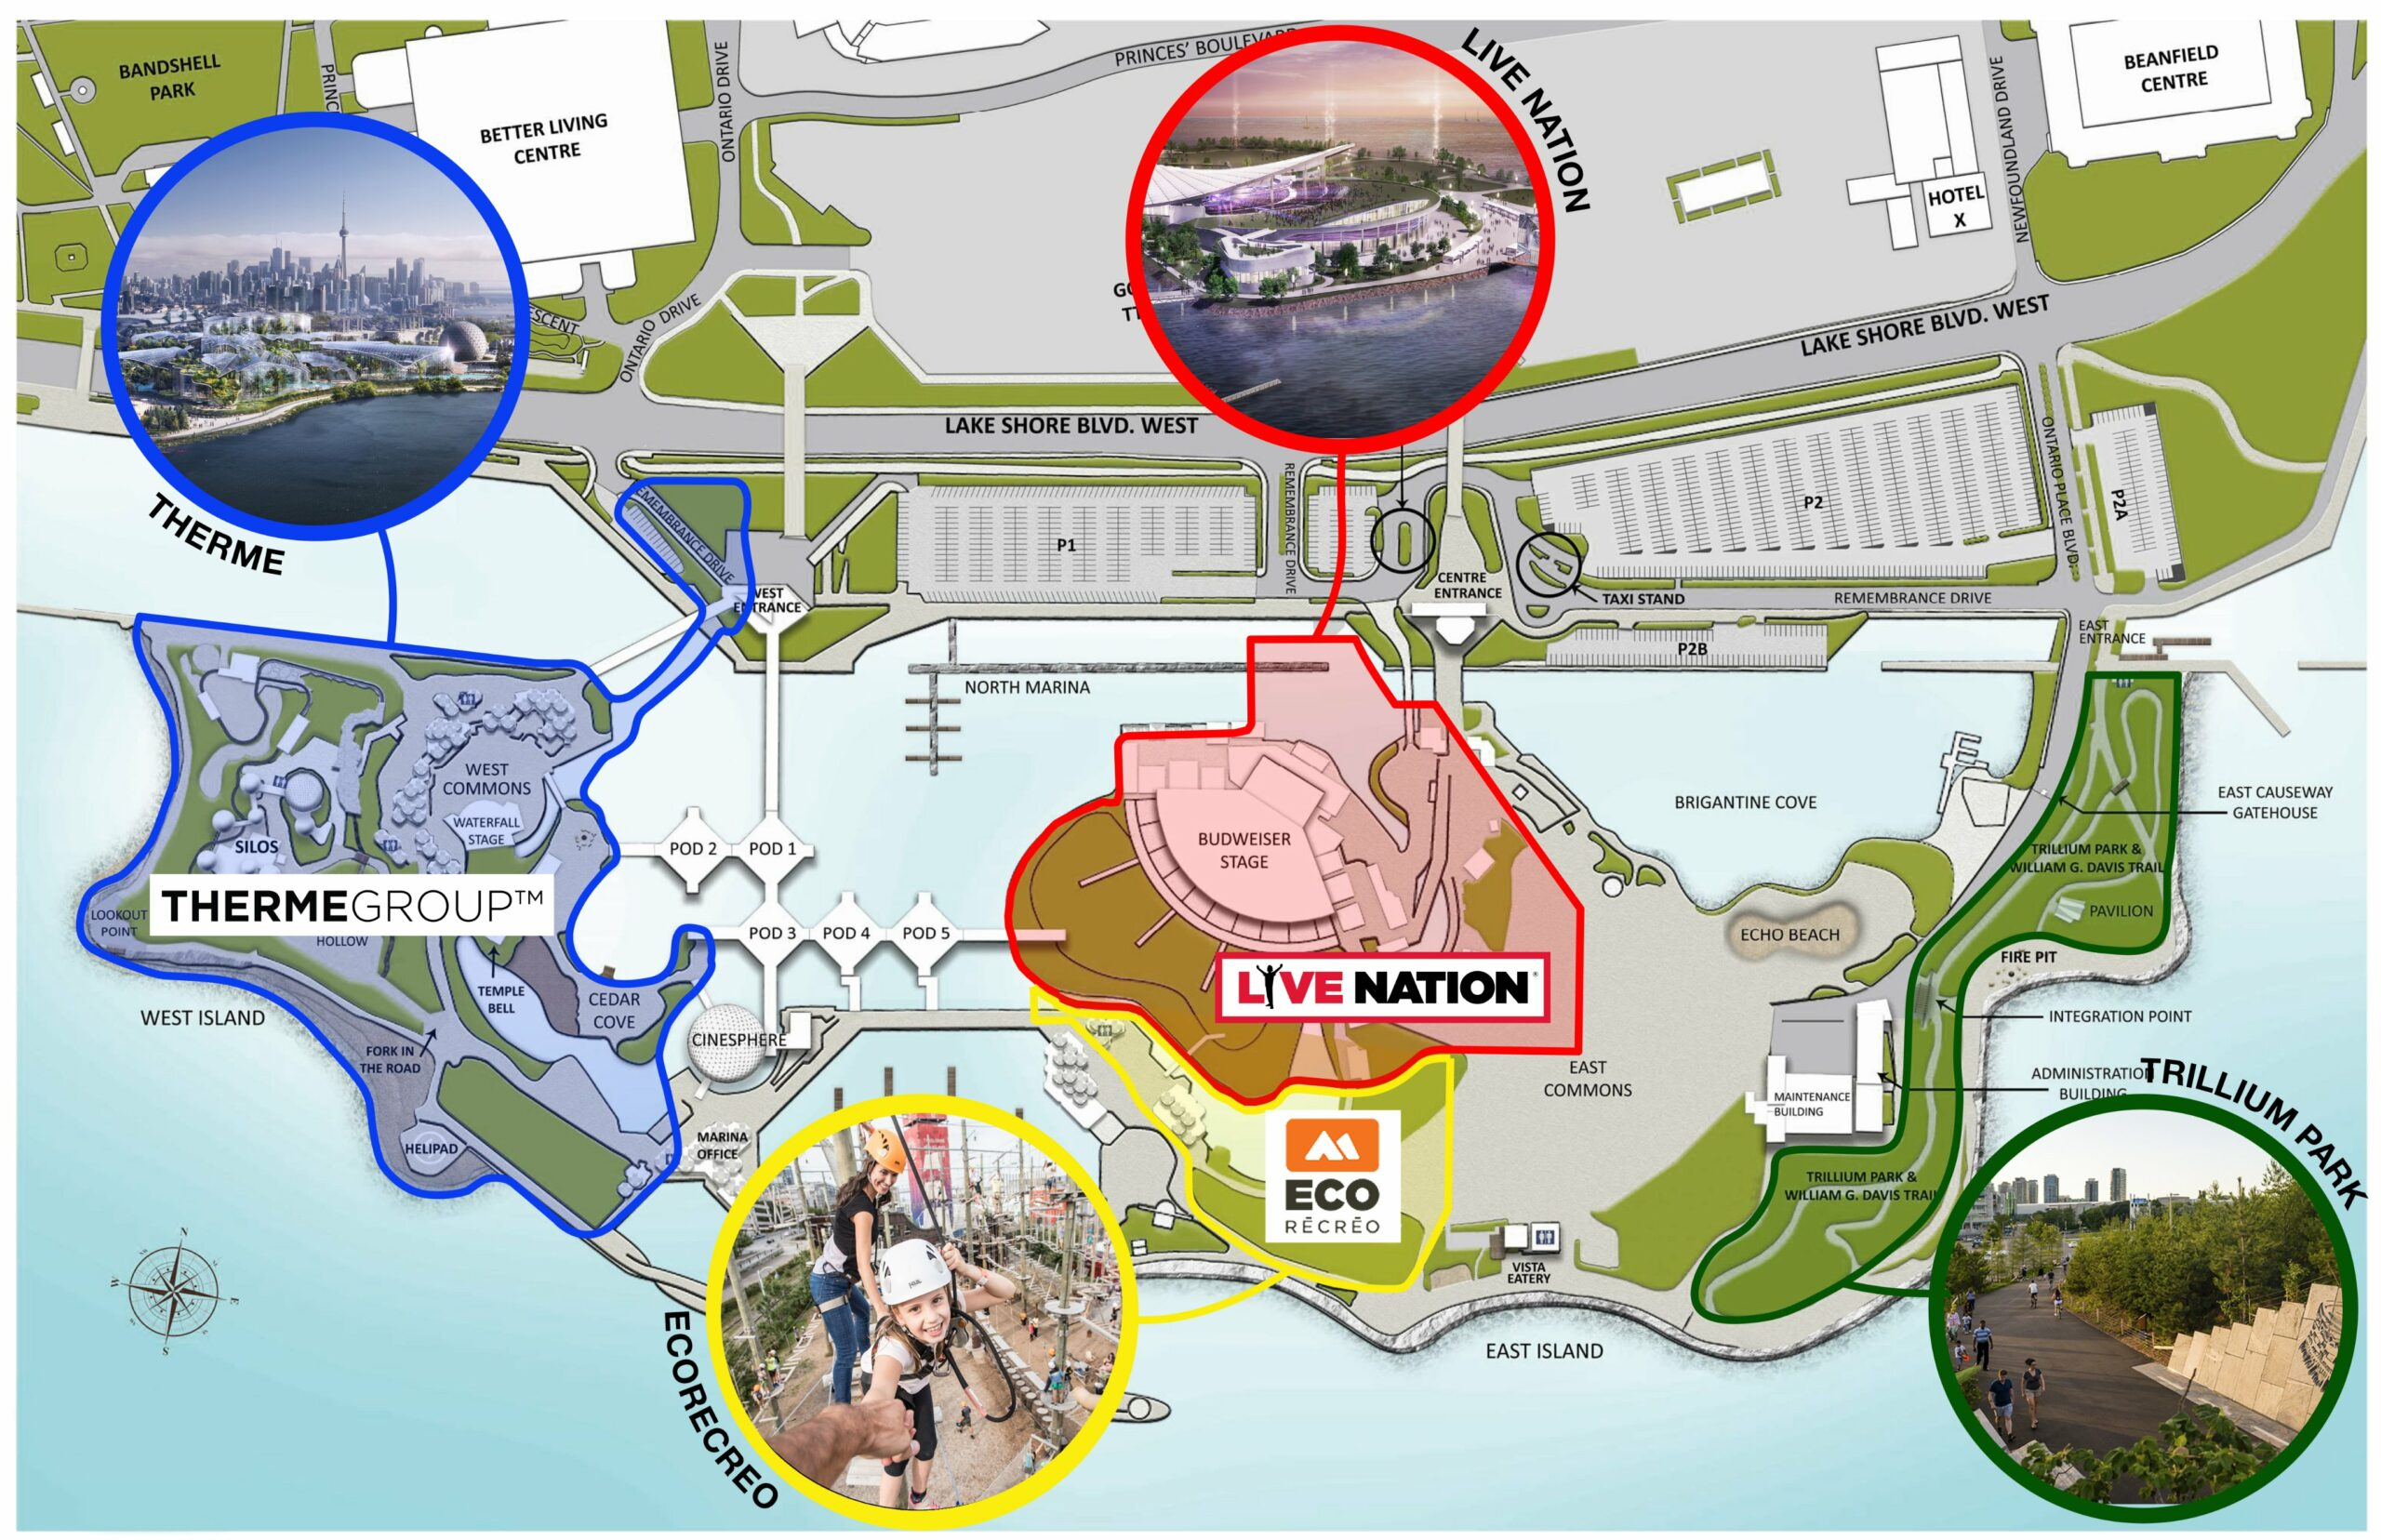 Ontario Place redevelopment plan unveiled, but details are scarce